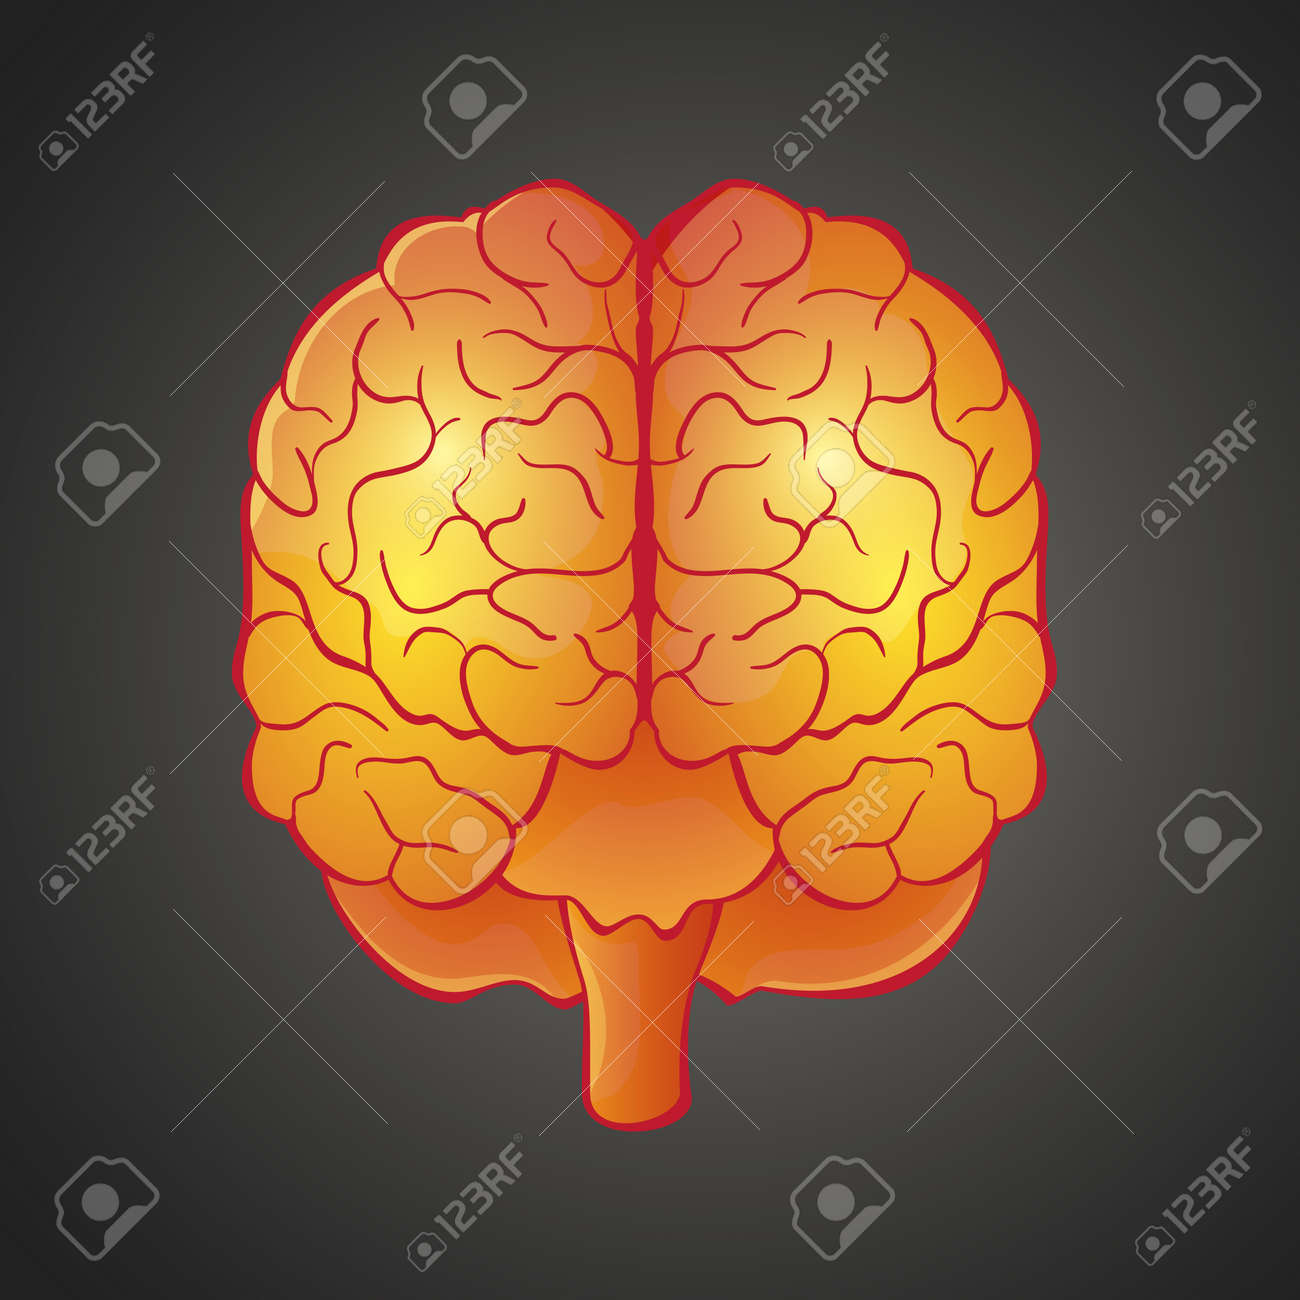 illustration of human organ brain front view in bright colors - 17521818